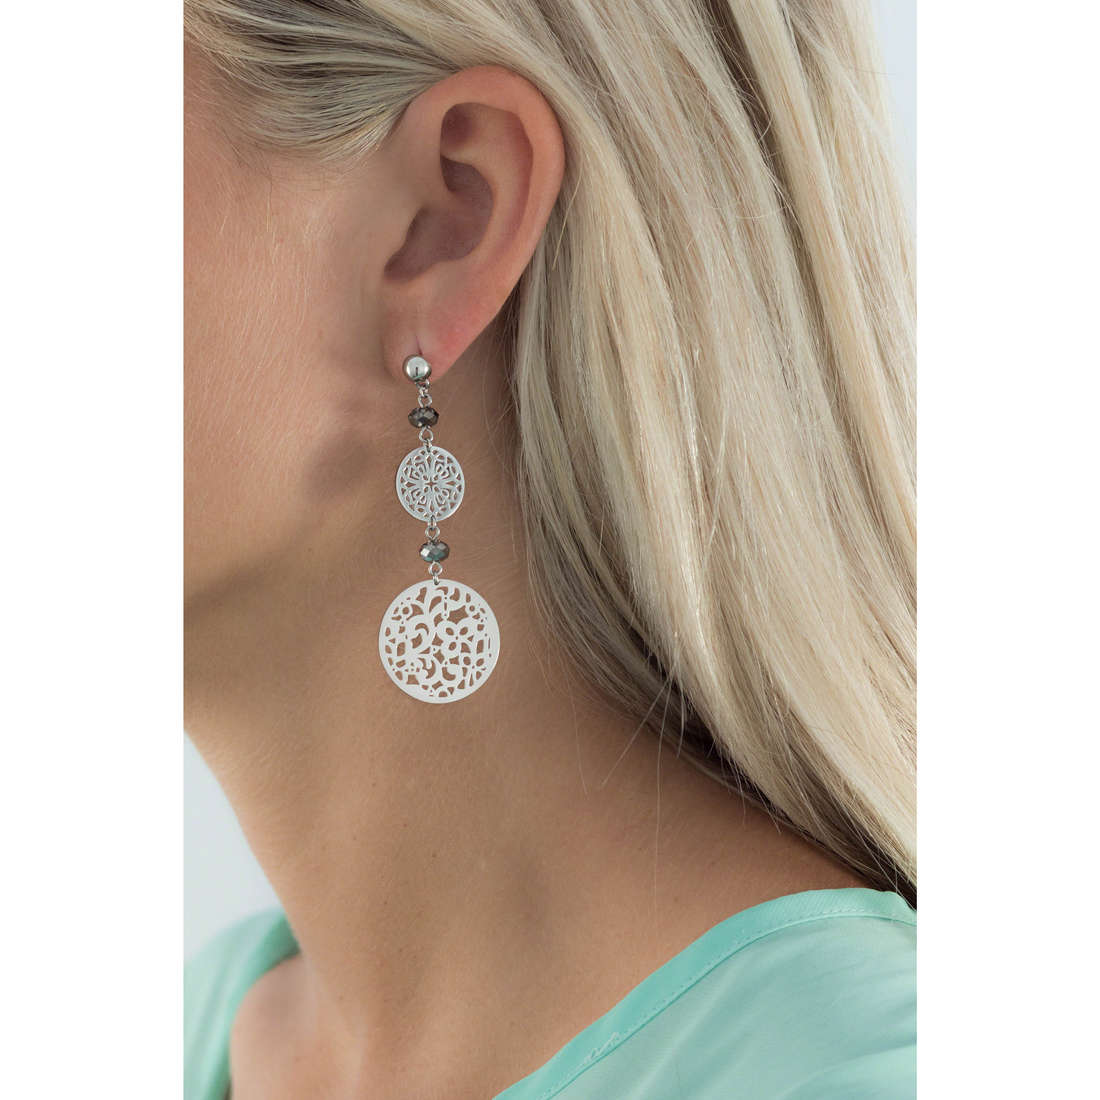 Brosway boucles d'oreille Abracadabra femme BAB21 indosso